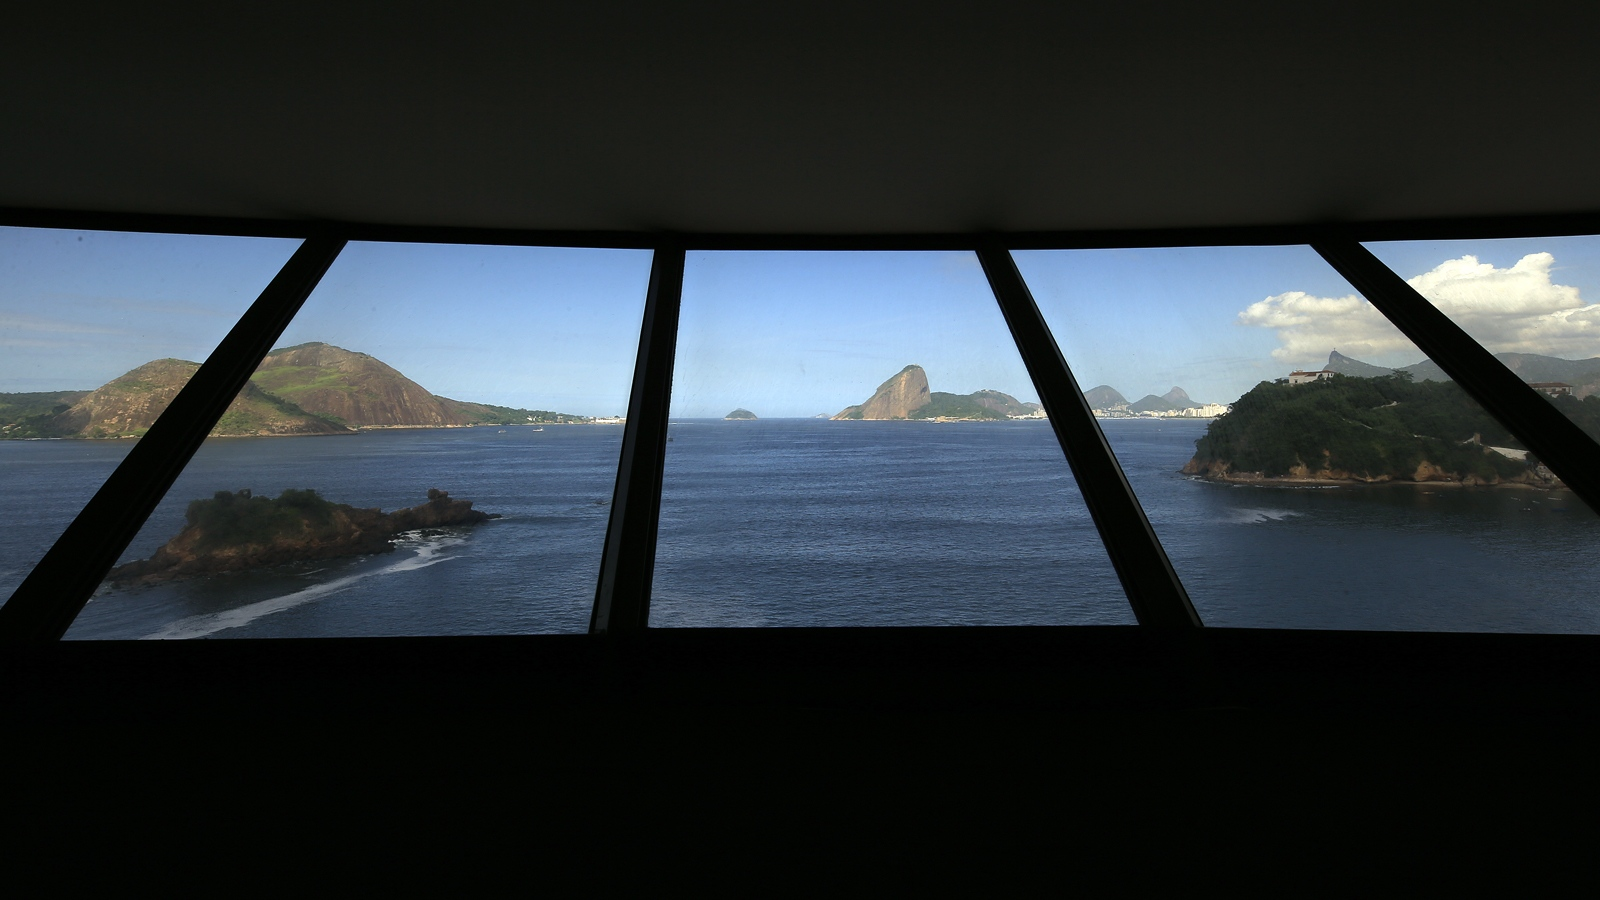 Contemporary Art Museum of Niterói - (MAC) Project by: Oscar Niemeyer Niteroi - Brazil